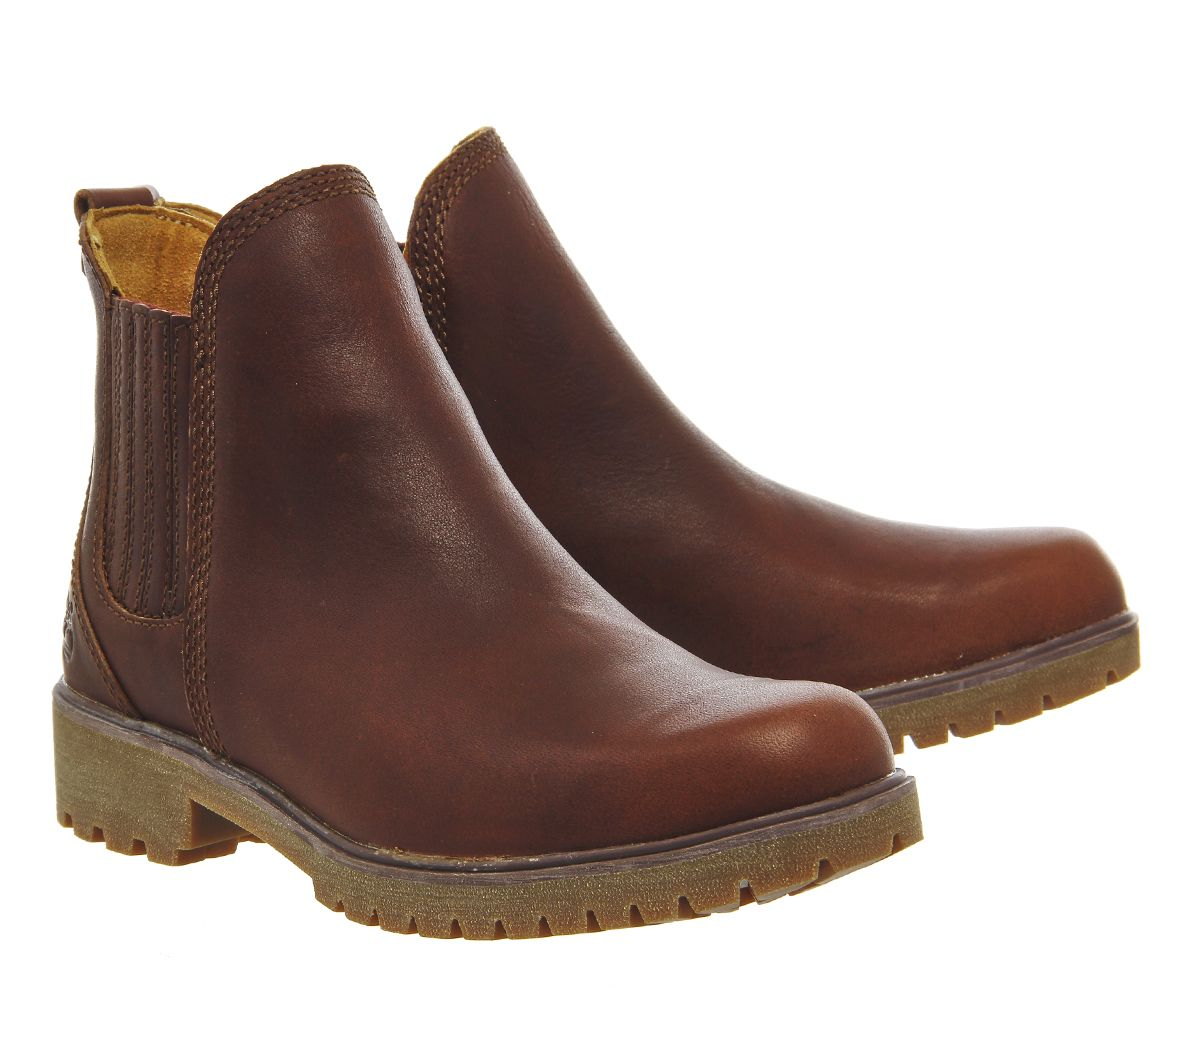 Timberland Lyonsdale Chelsea Womens Ankle Boots Cognac Forty Leather